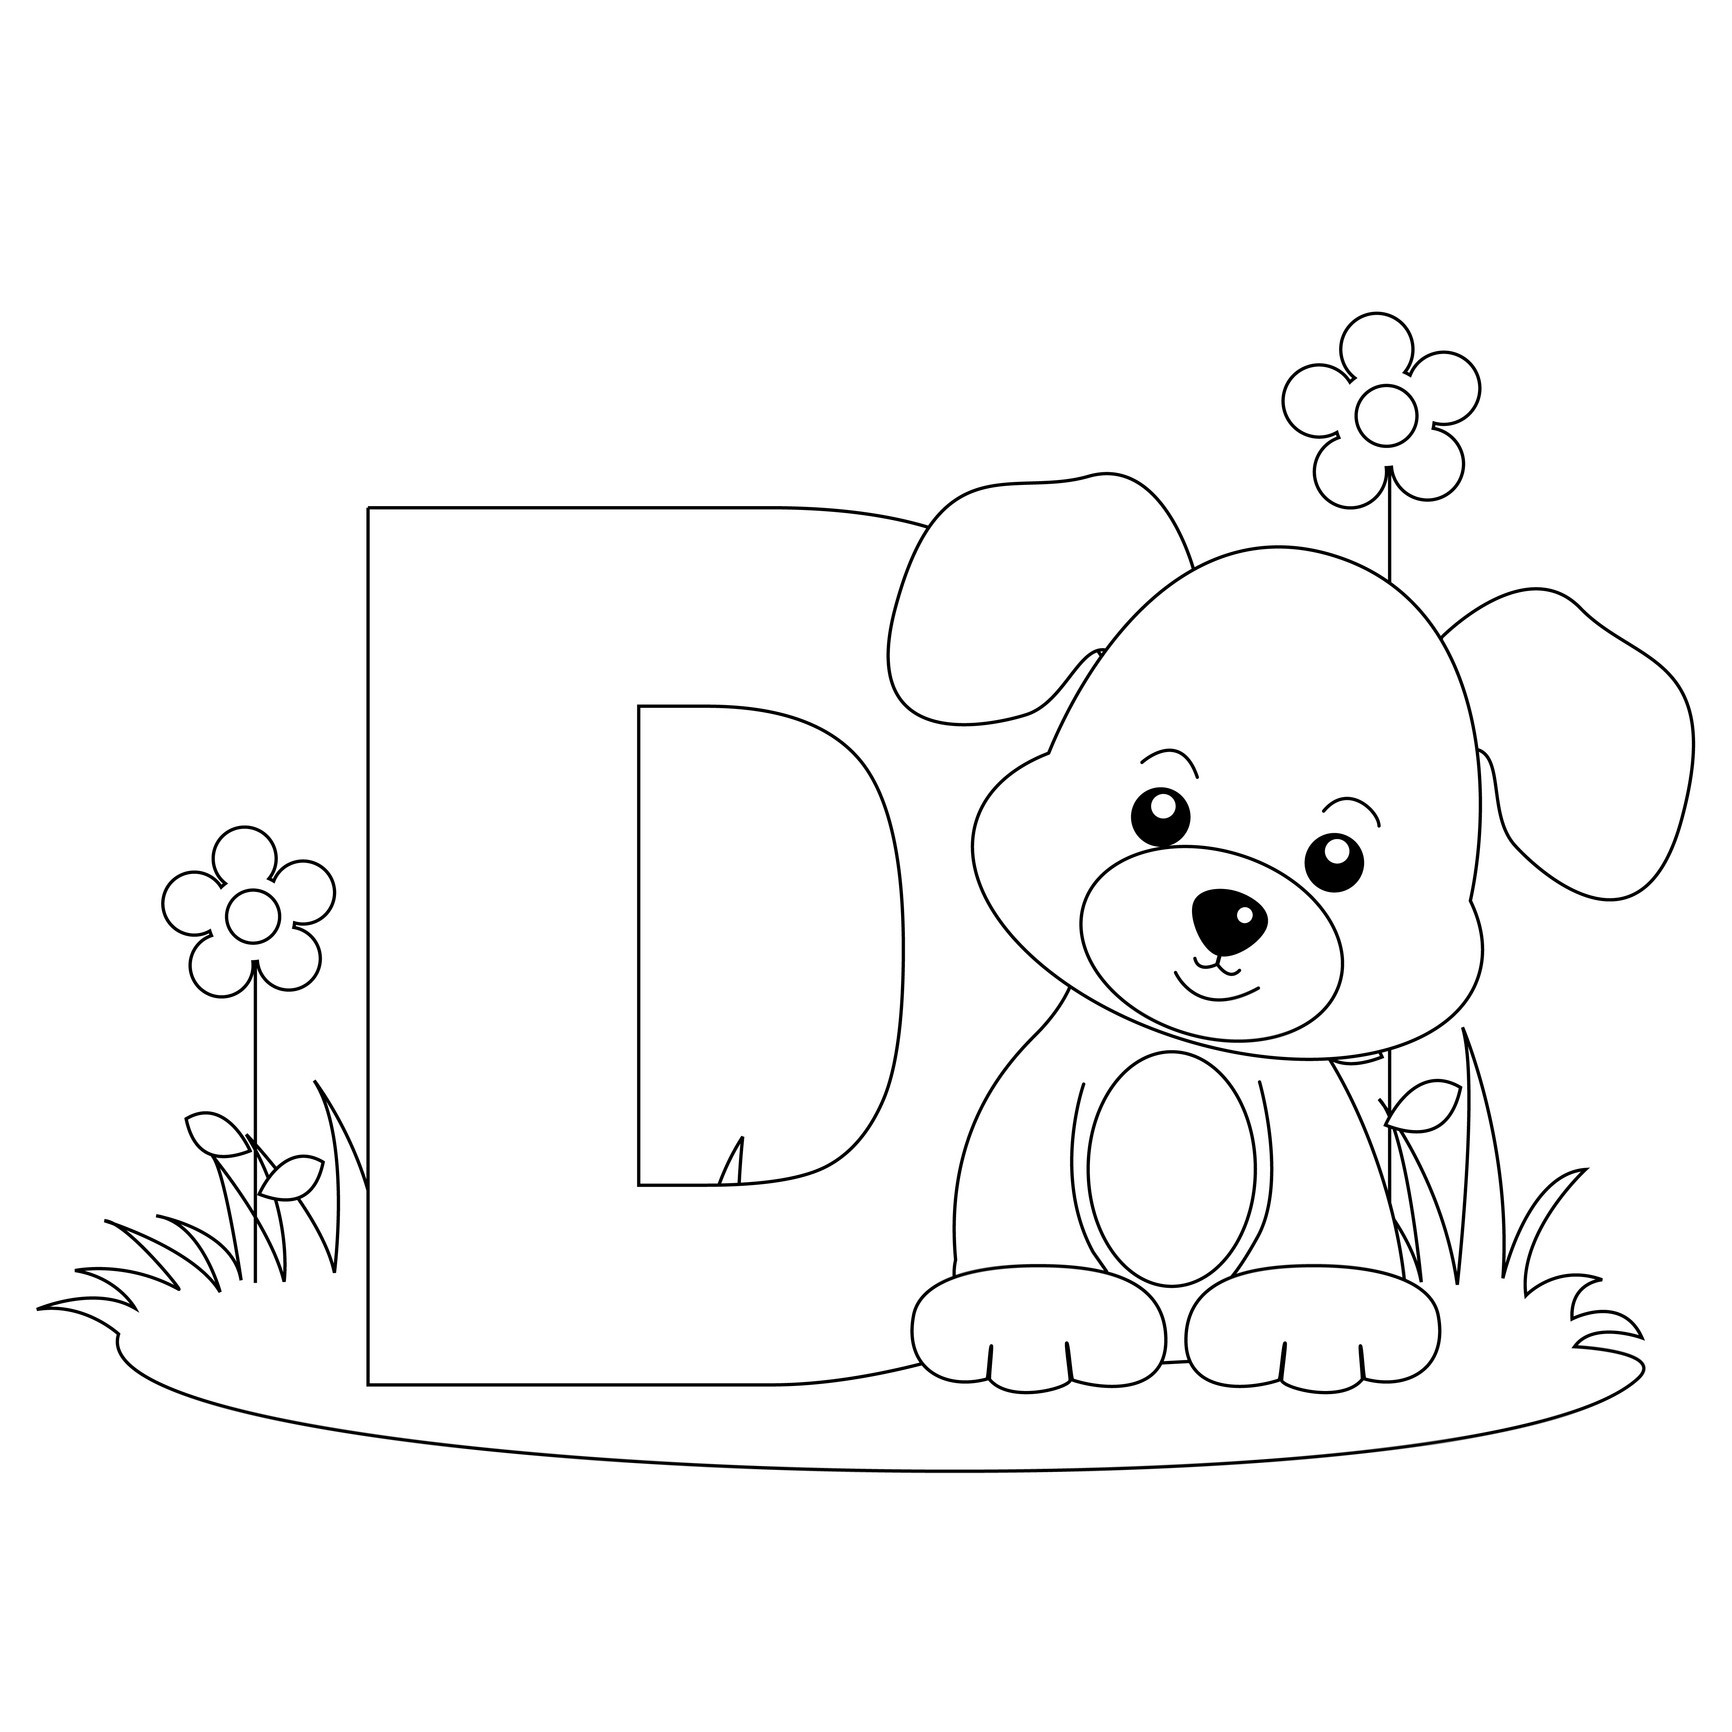 printable alphabet coloring pages animals | Free Printable Alphabet Coloring Pages for Kids - Best ...